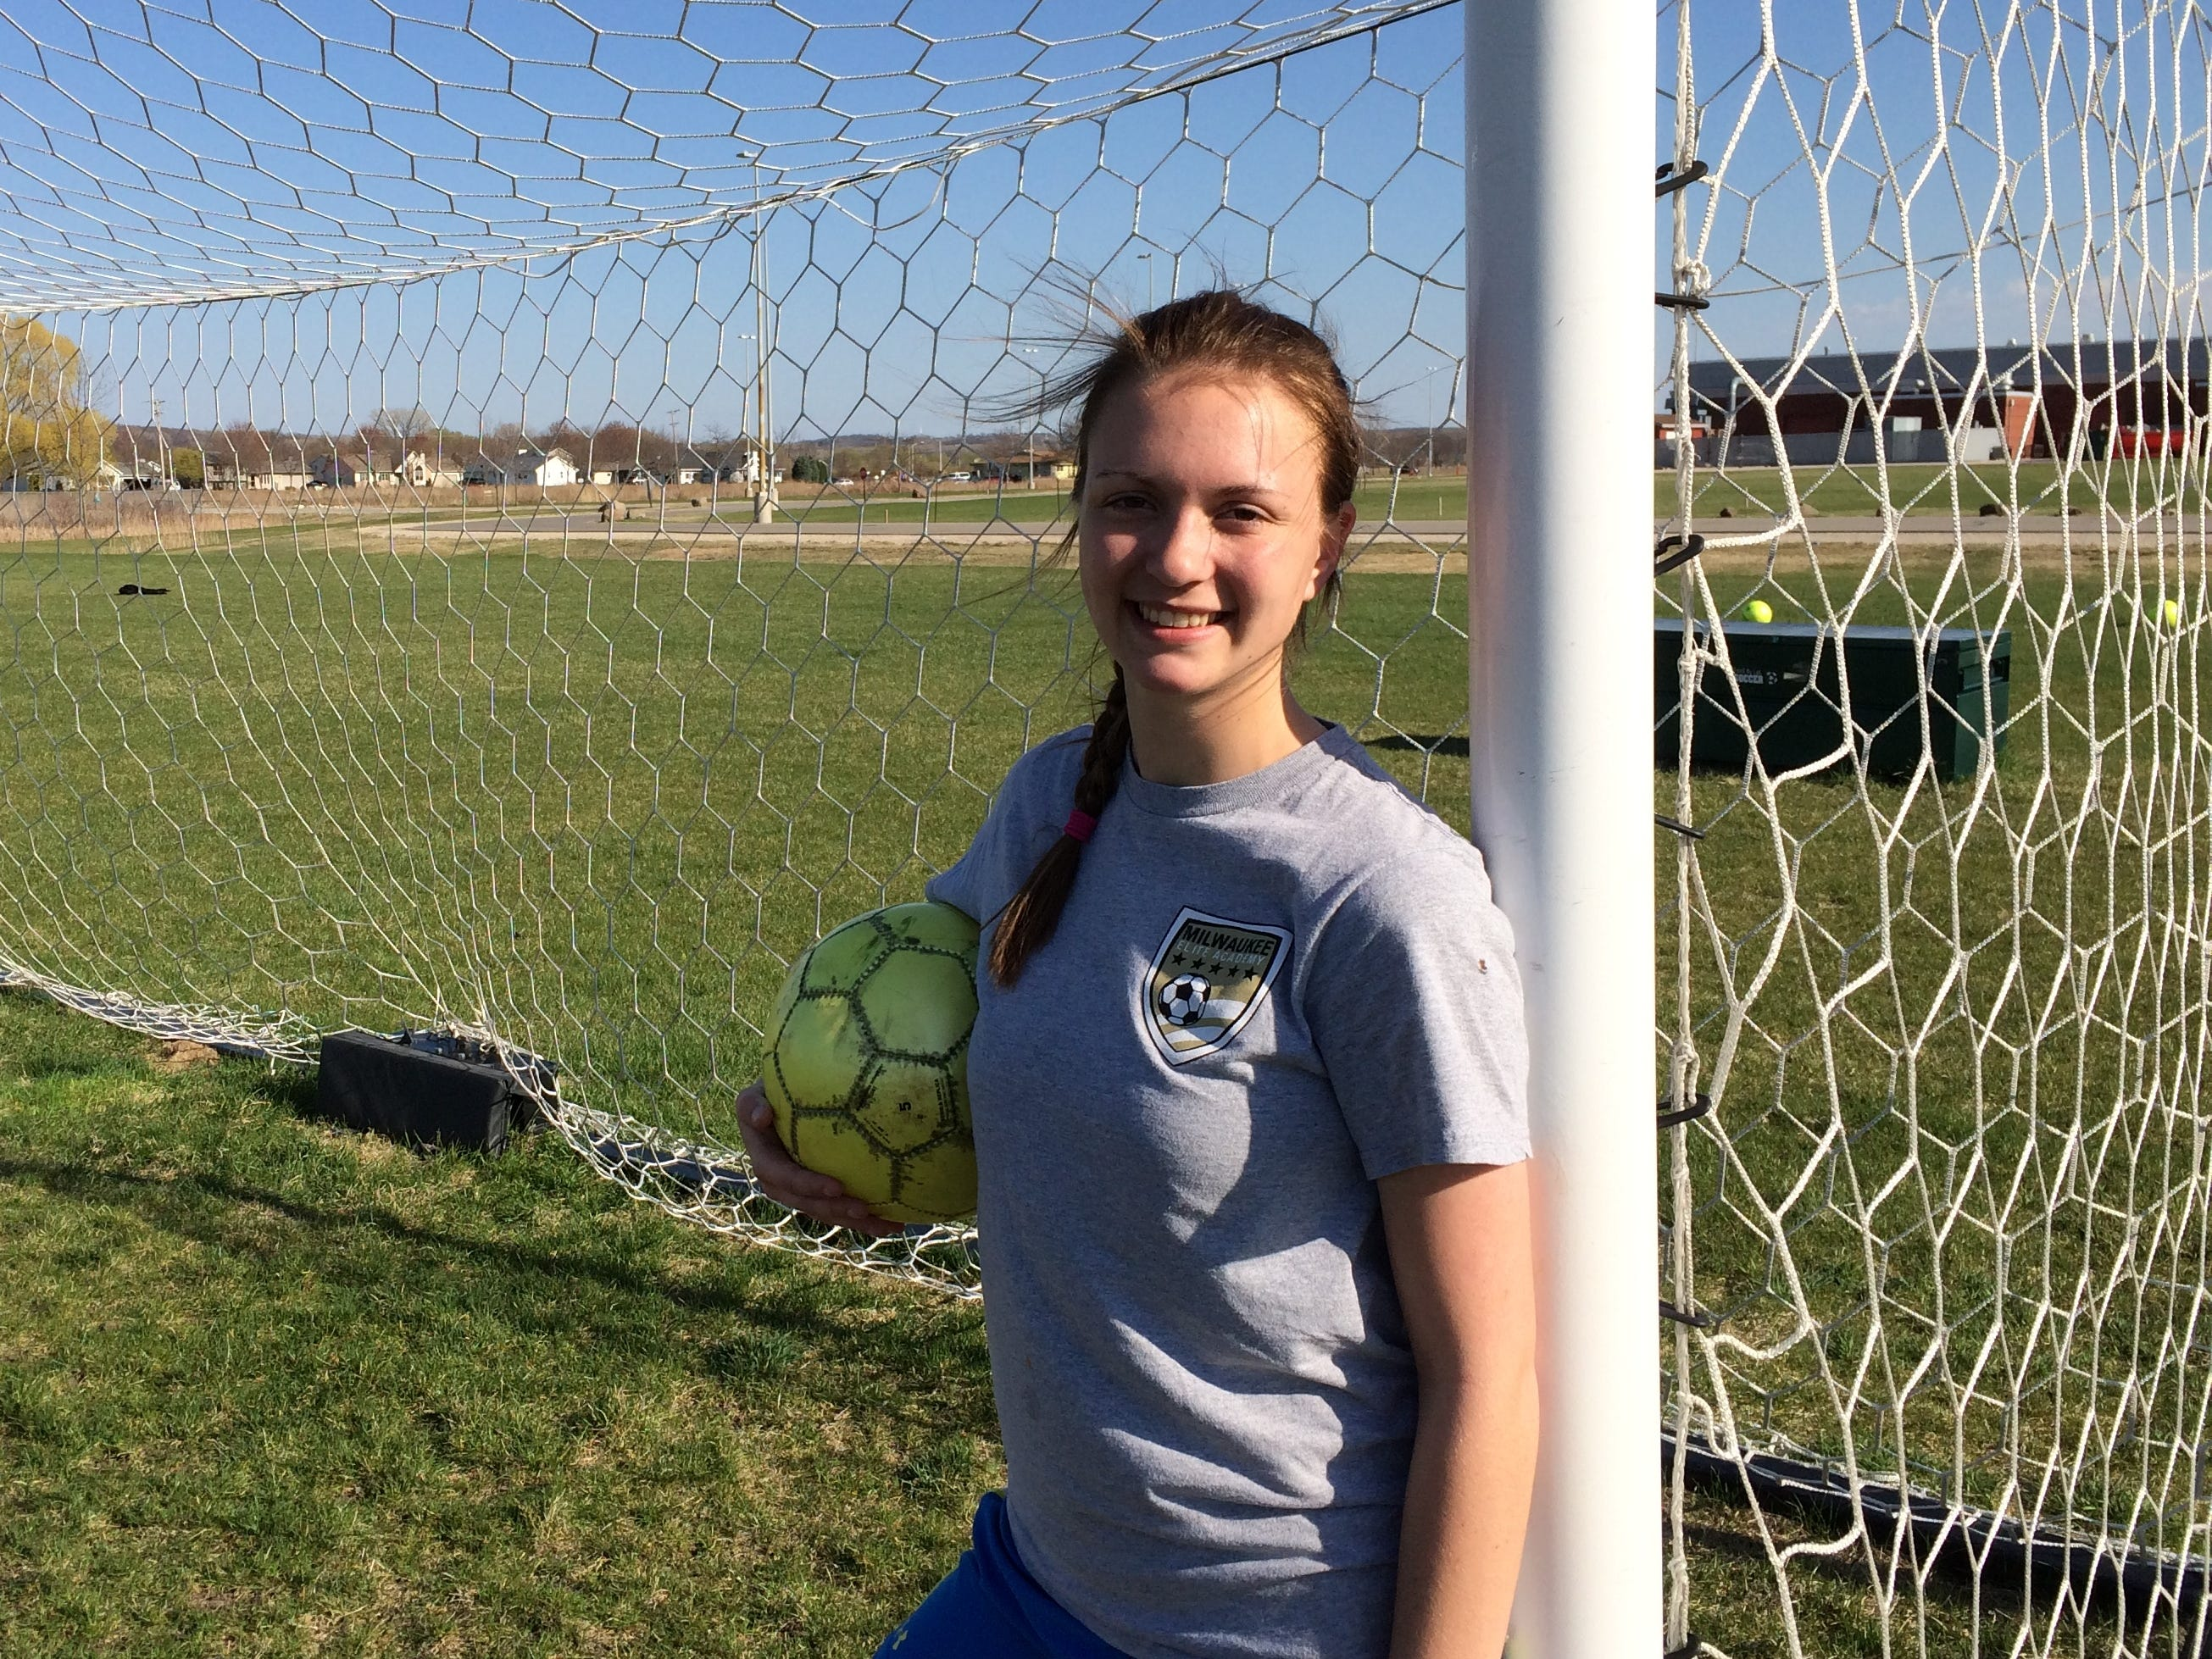 Fond du Lac's Maddison Te Stroete has been a primary scorer for the Cardinals so far this year.